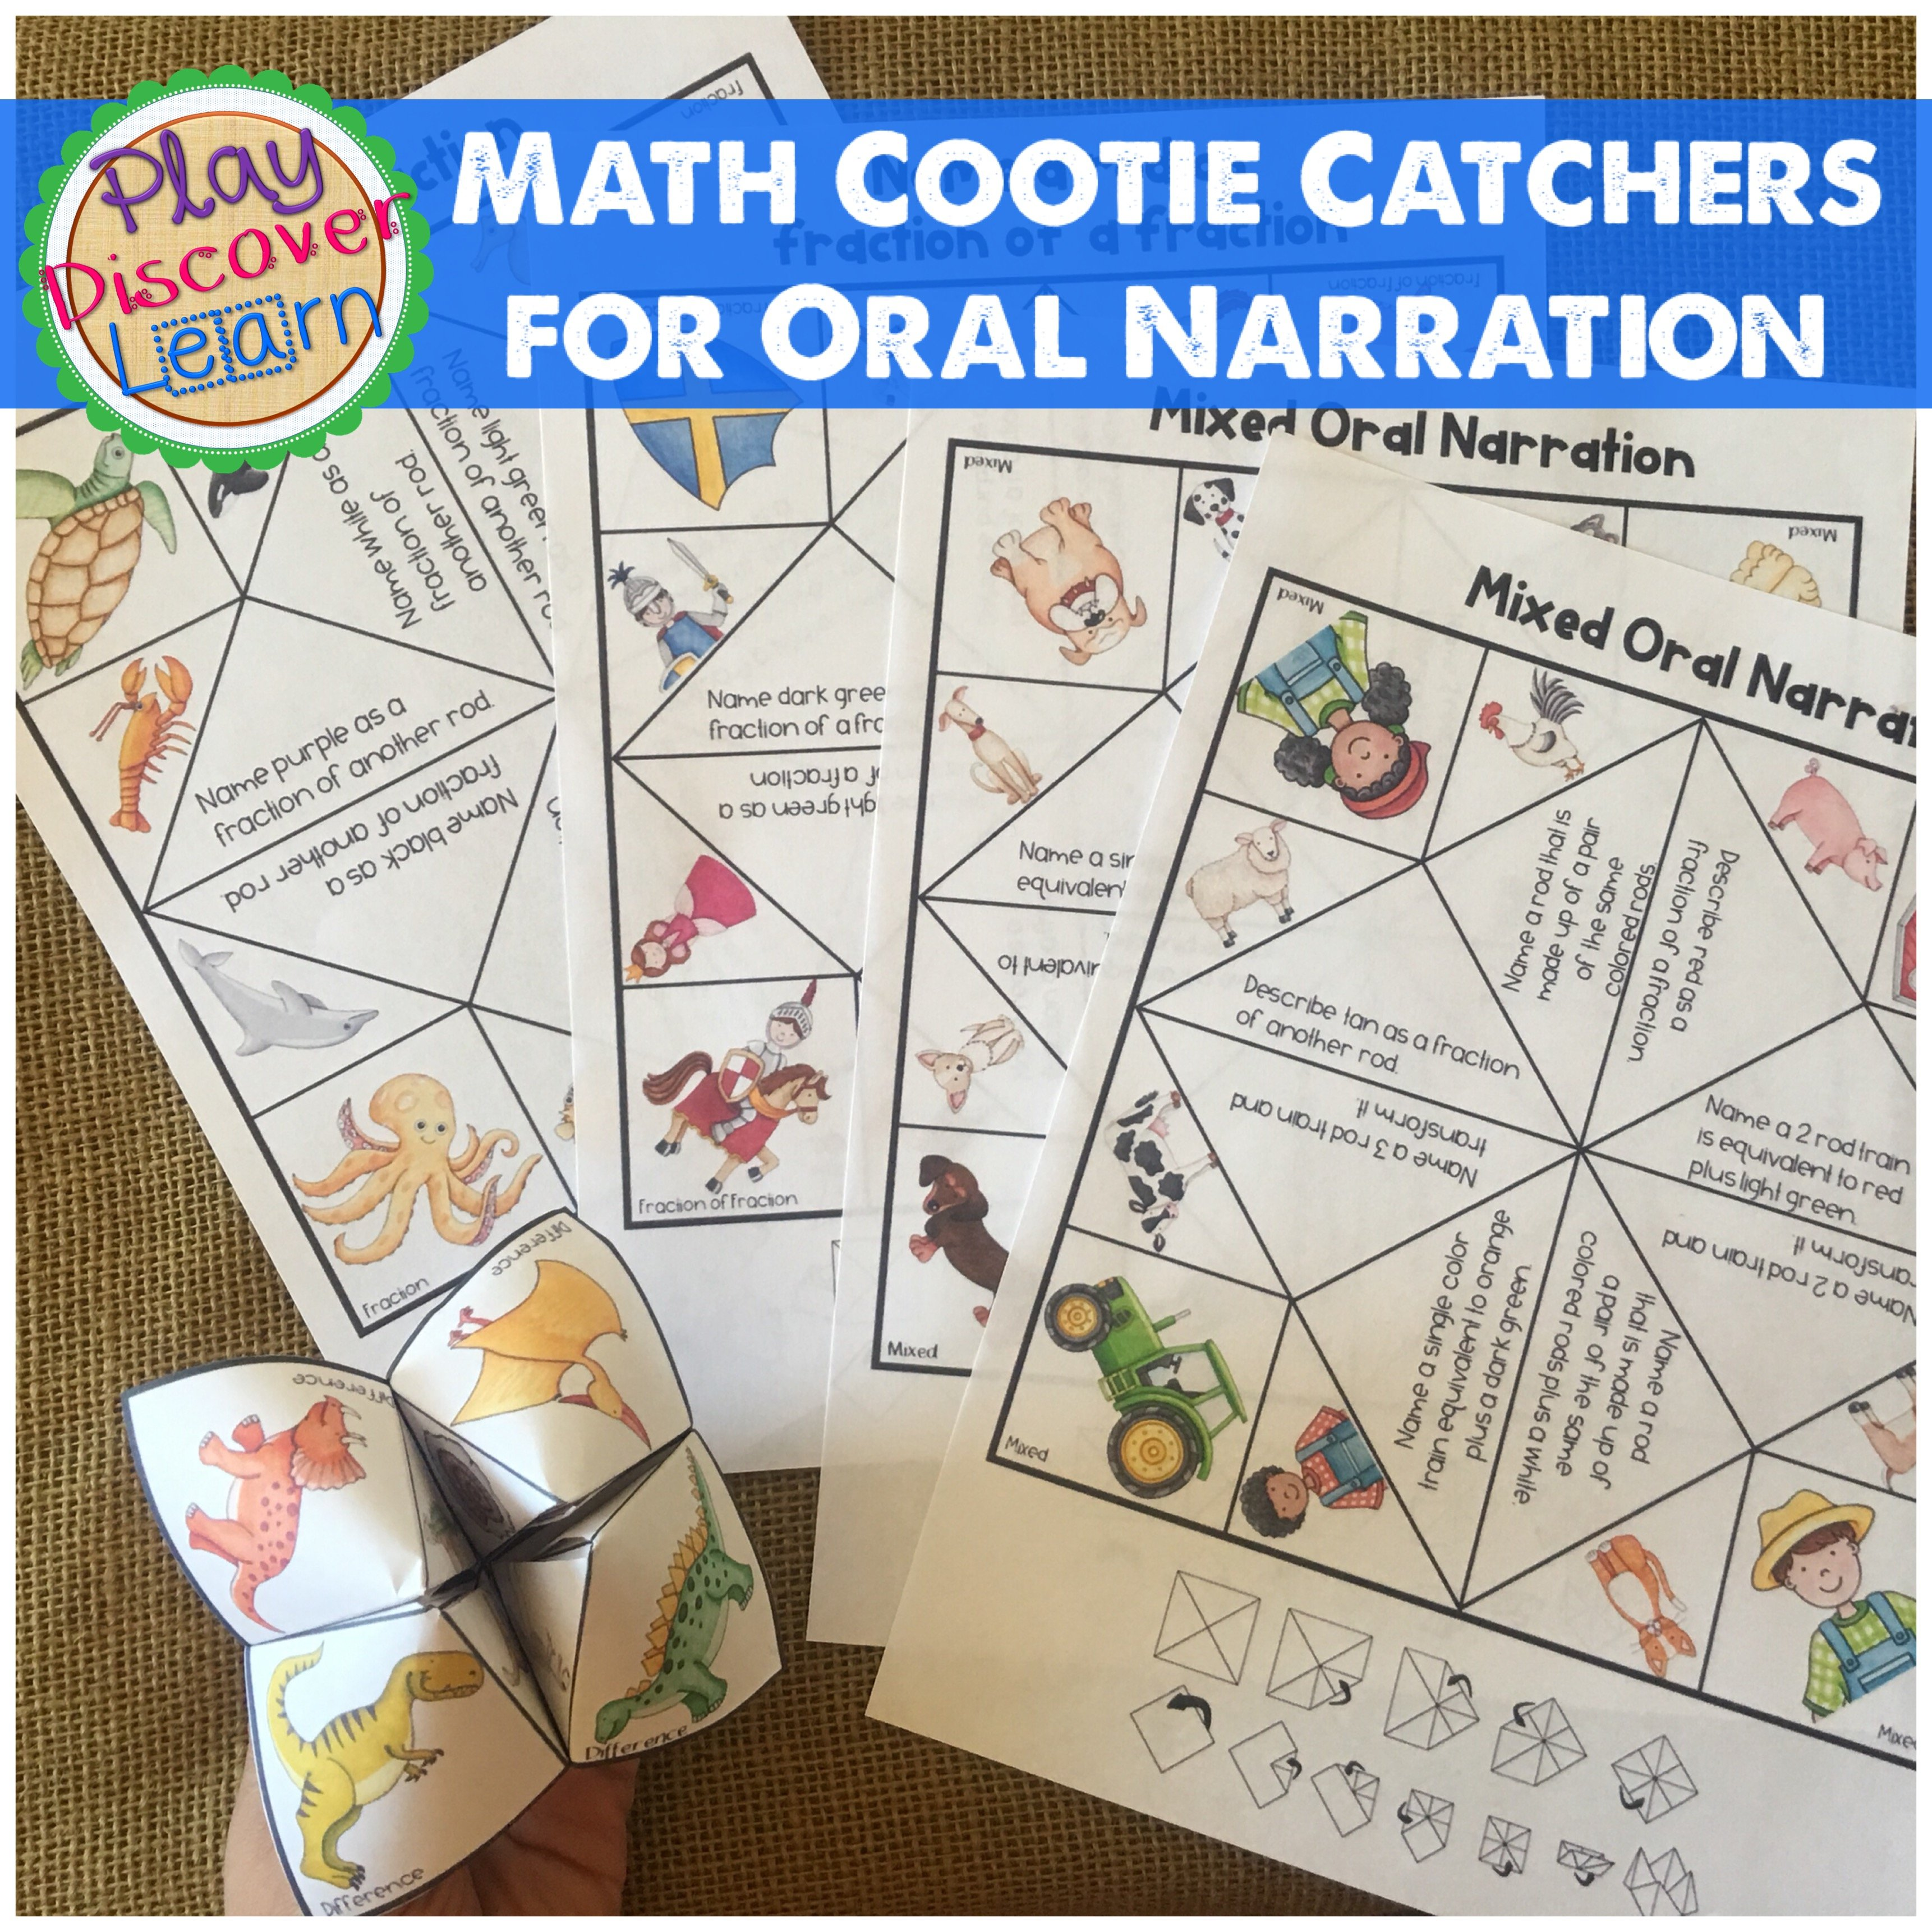 Oral Narration isn't just for MATHCamp. Kids should be narrating math all the time.